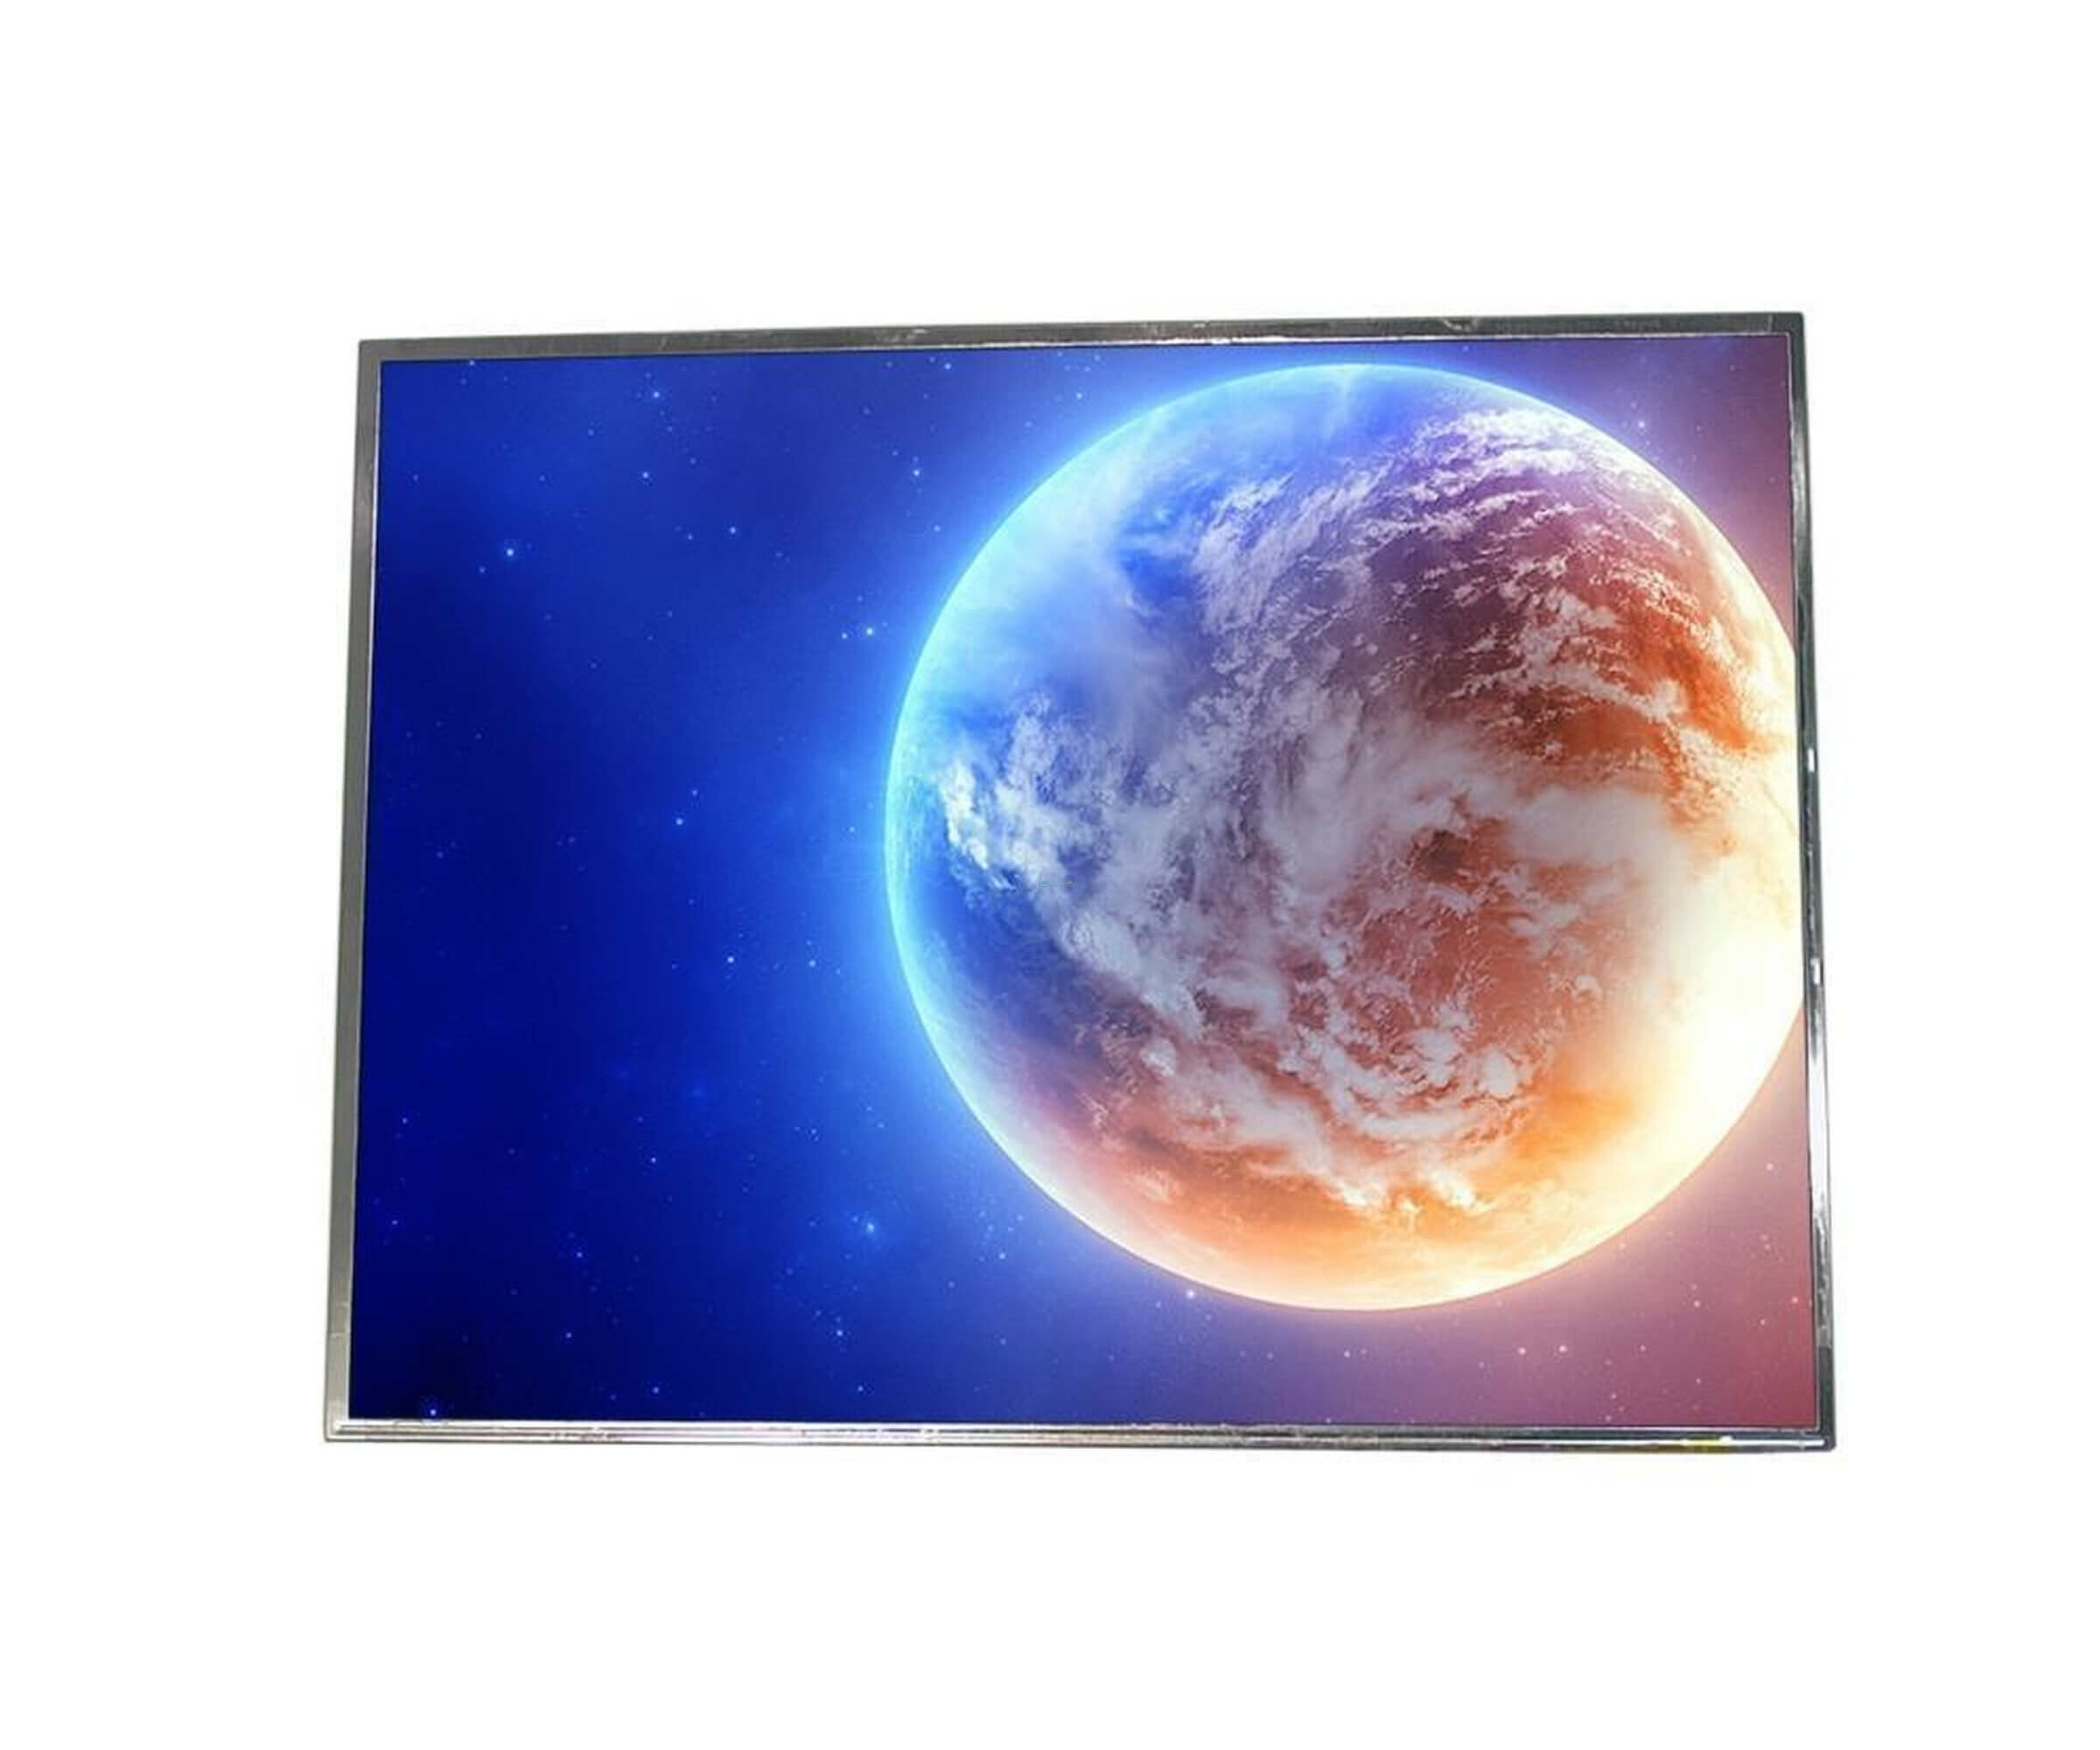 AUO AU Optronics Display - B133XTN01.0 - 13.3 - 1366 x 768 - WXGA - HD - LED